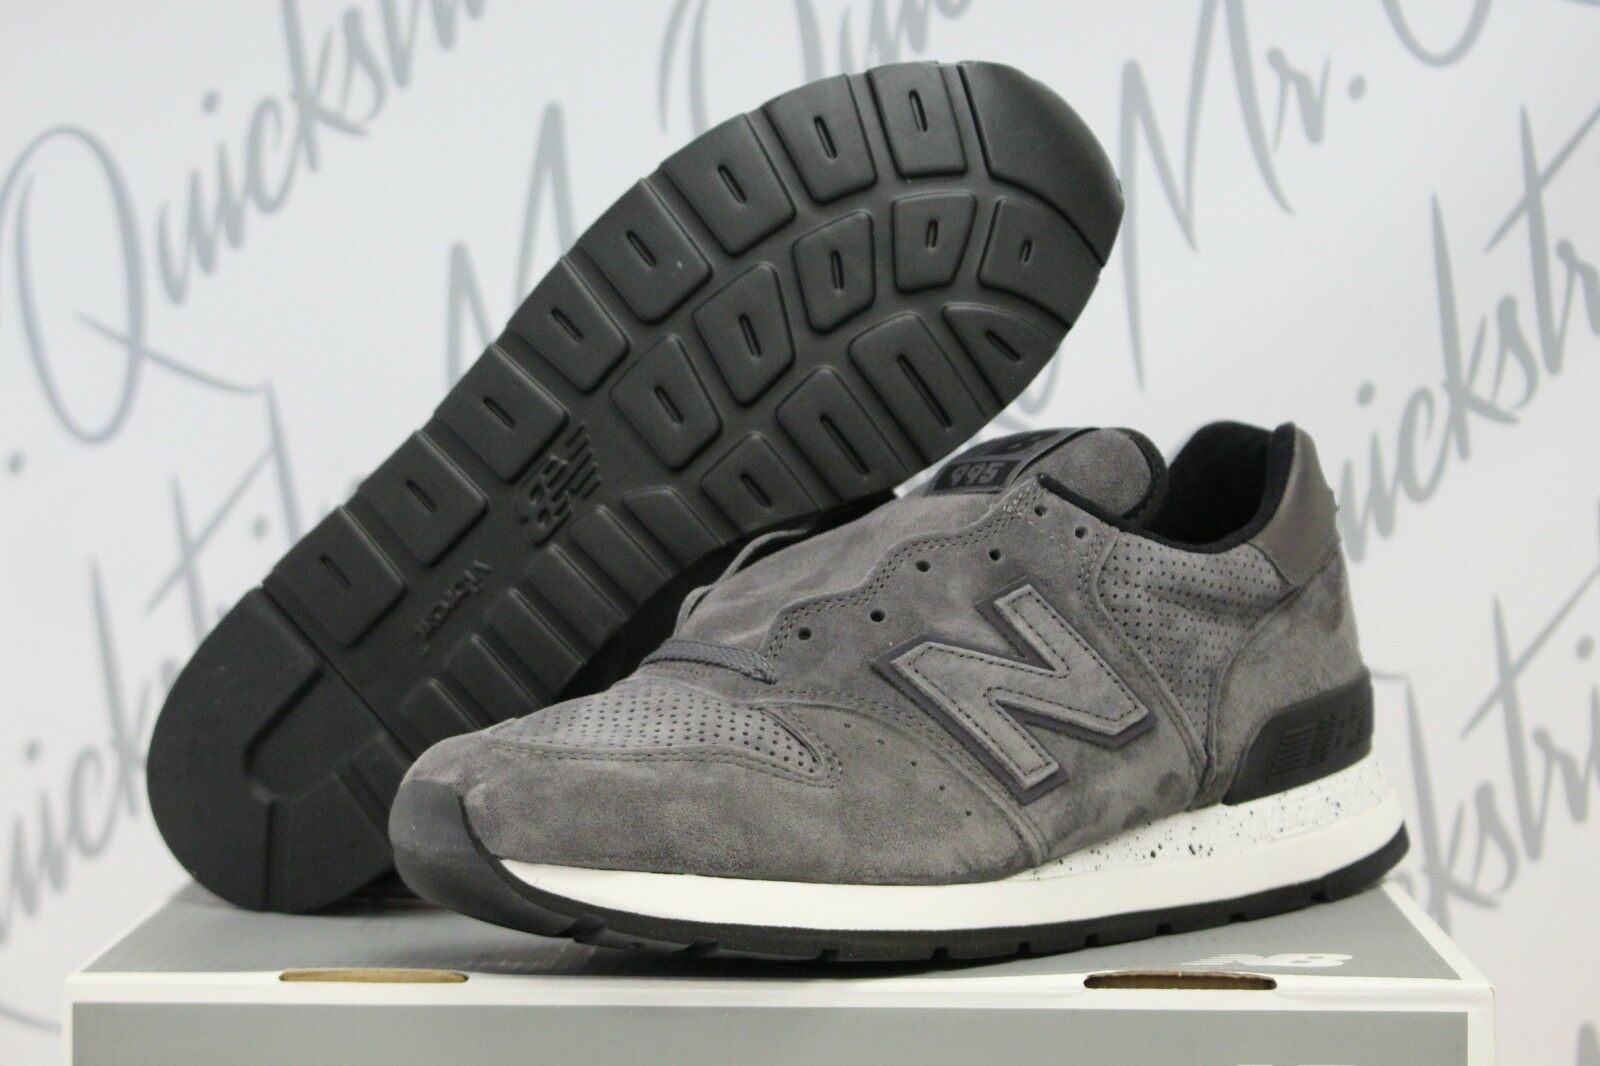 NEW BALANCE 995 SZ 8-13 MADE IN USA NORTHERN LIGHTS PACK BLACK GREY M995SYG